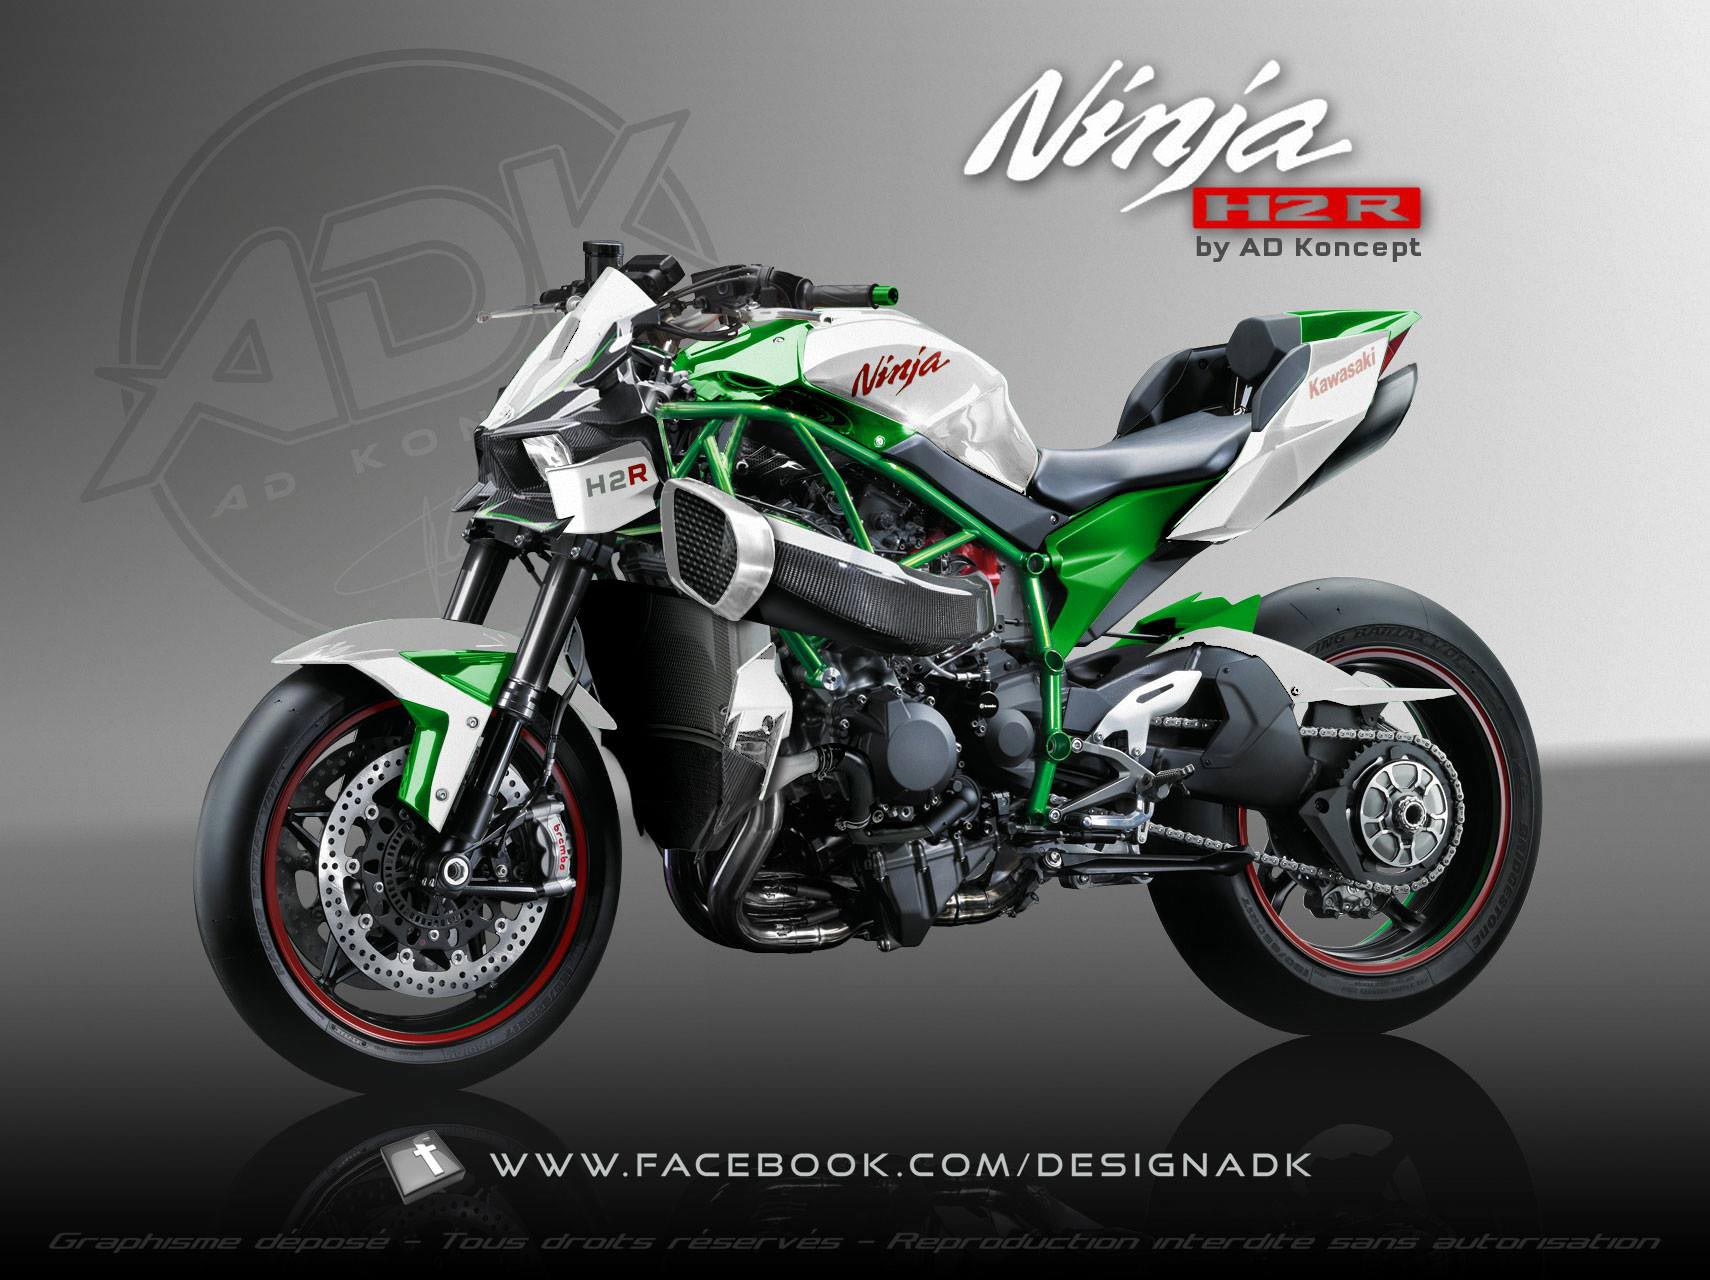 kawasaki ninja h2r archives asphalt rubber. Black Bedroom Furniture Sets. Home Design Ideas